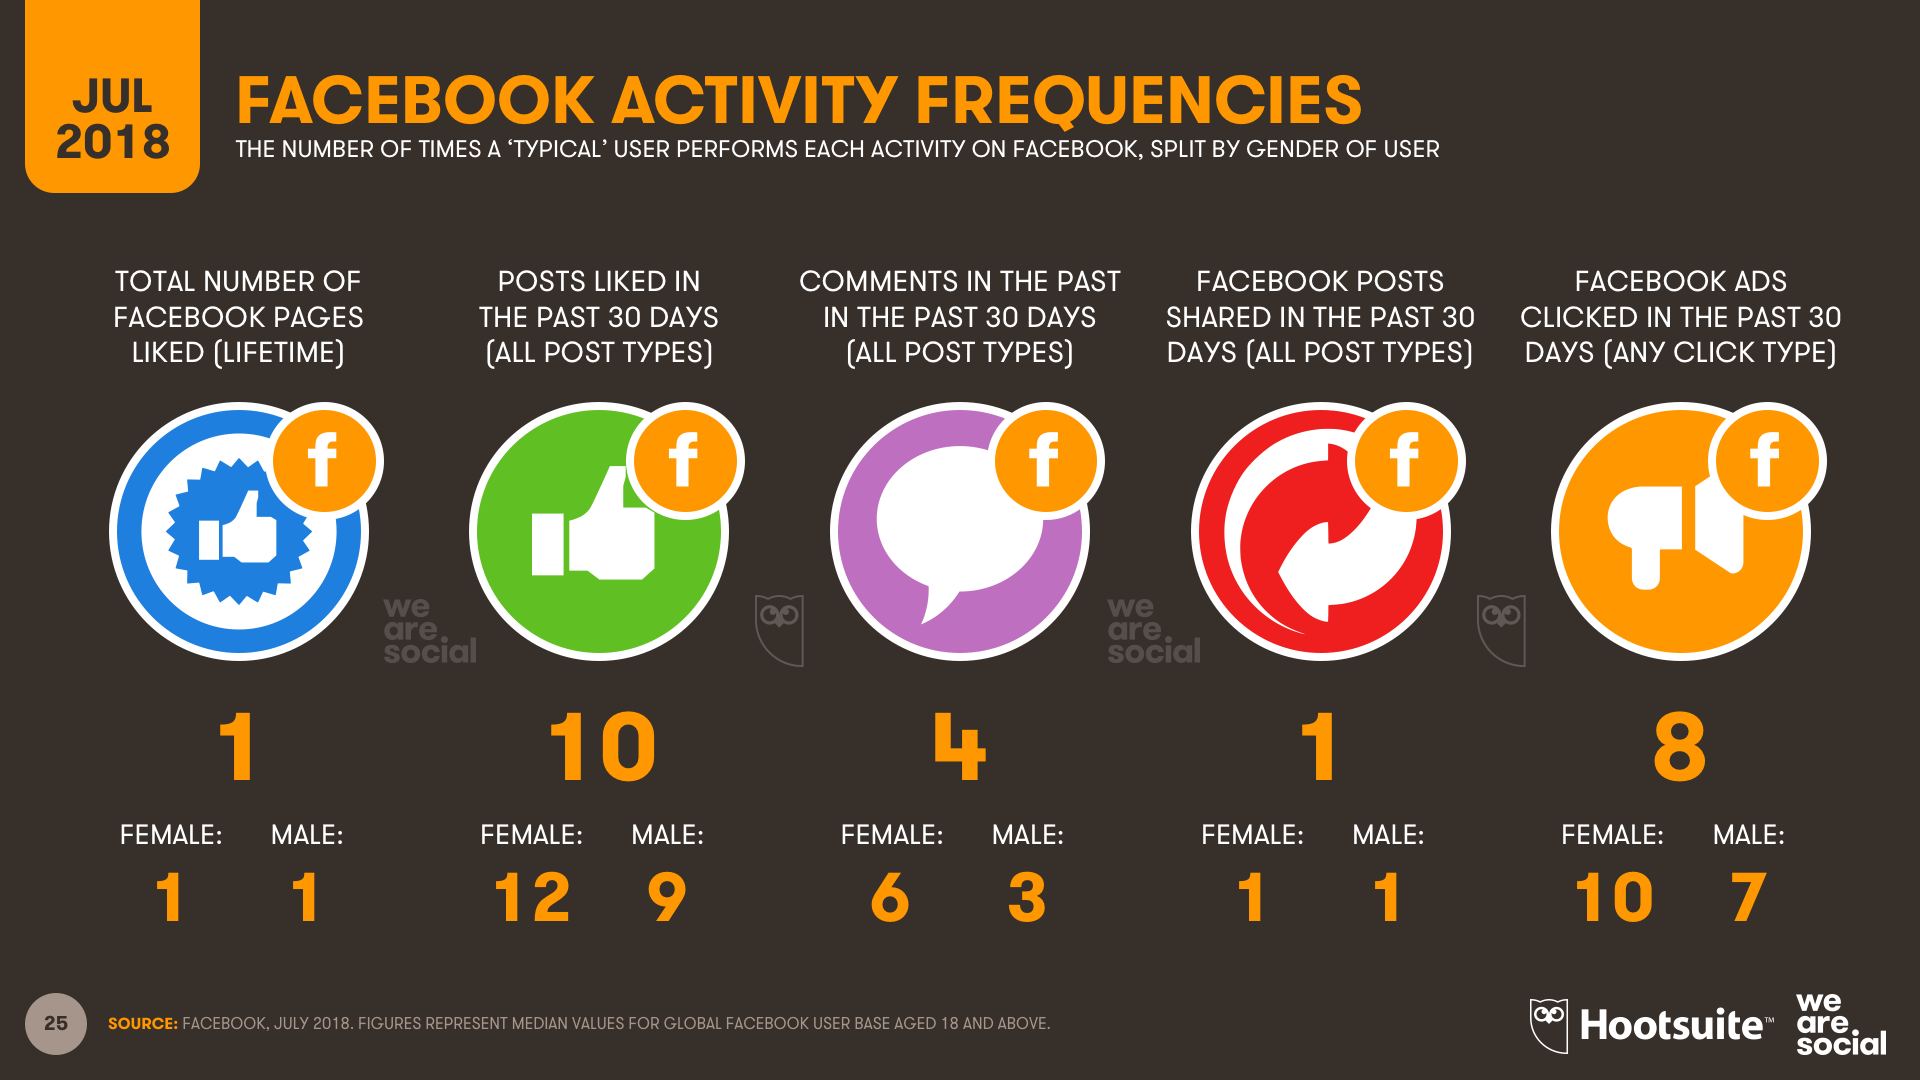 Q3 2018 - Facebook Activities (inc Ad Clicks)